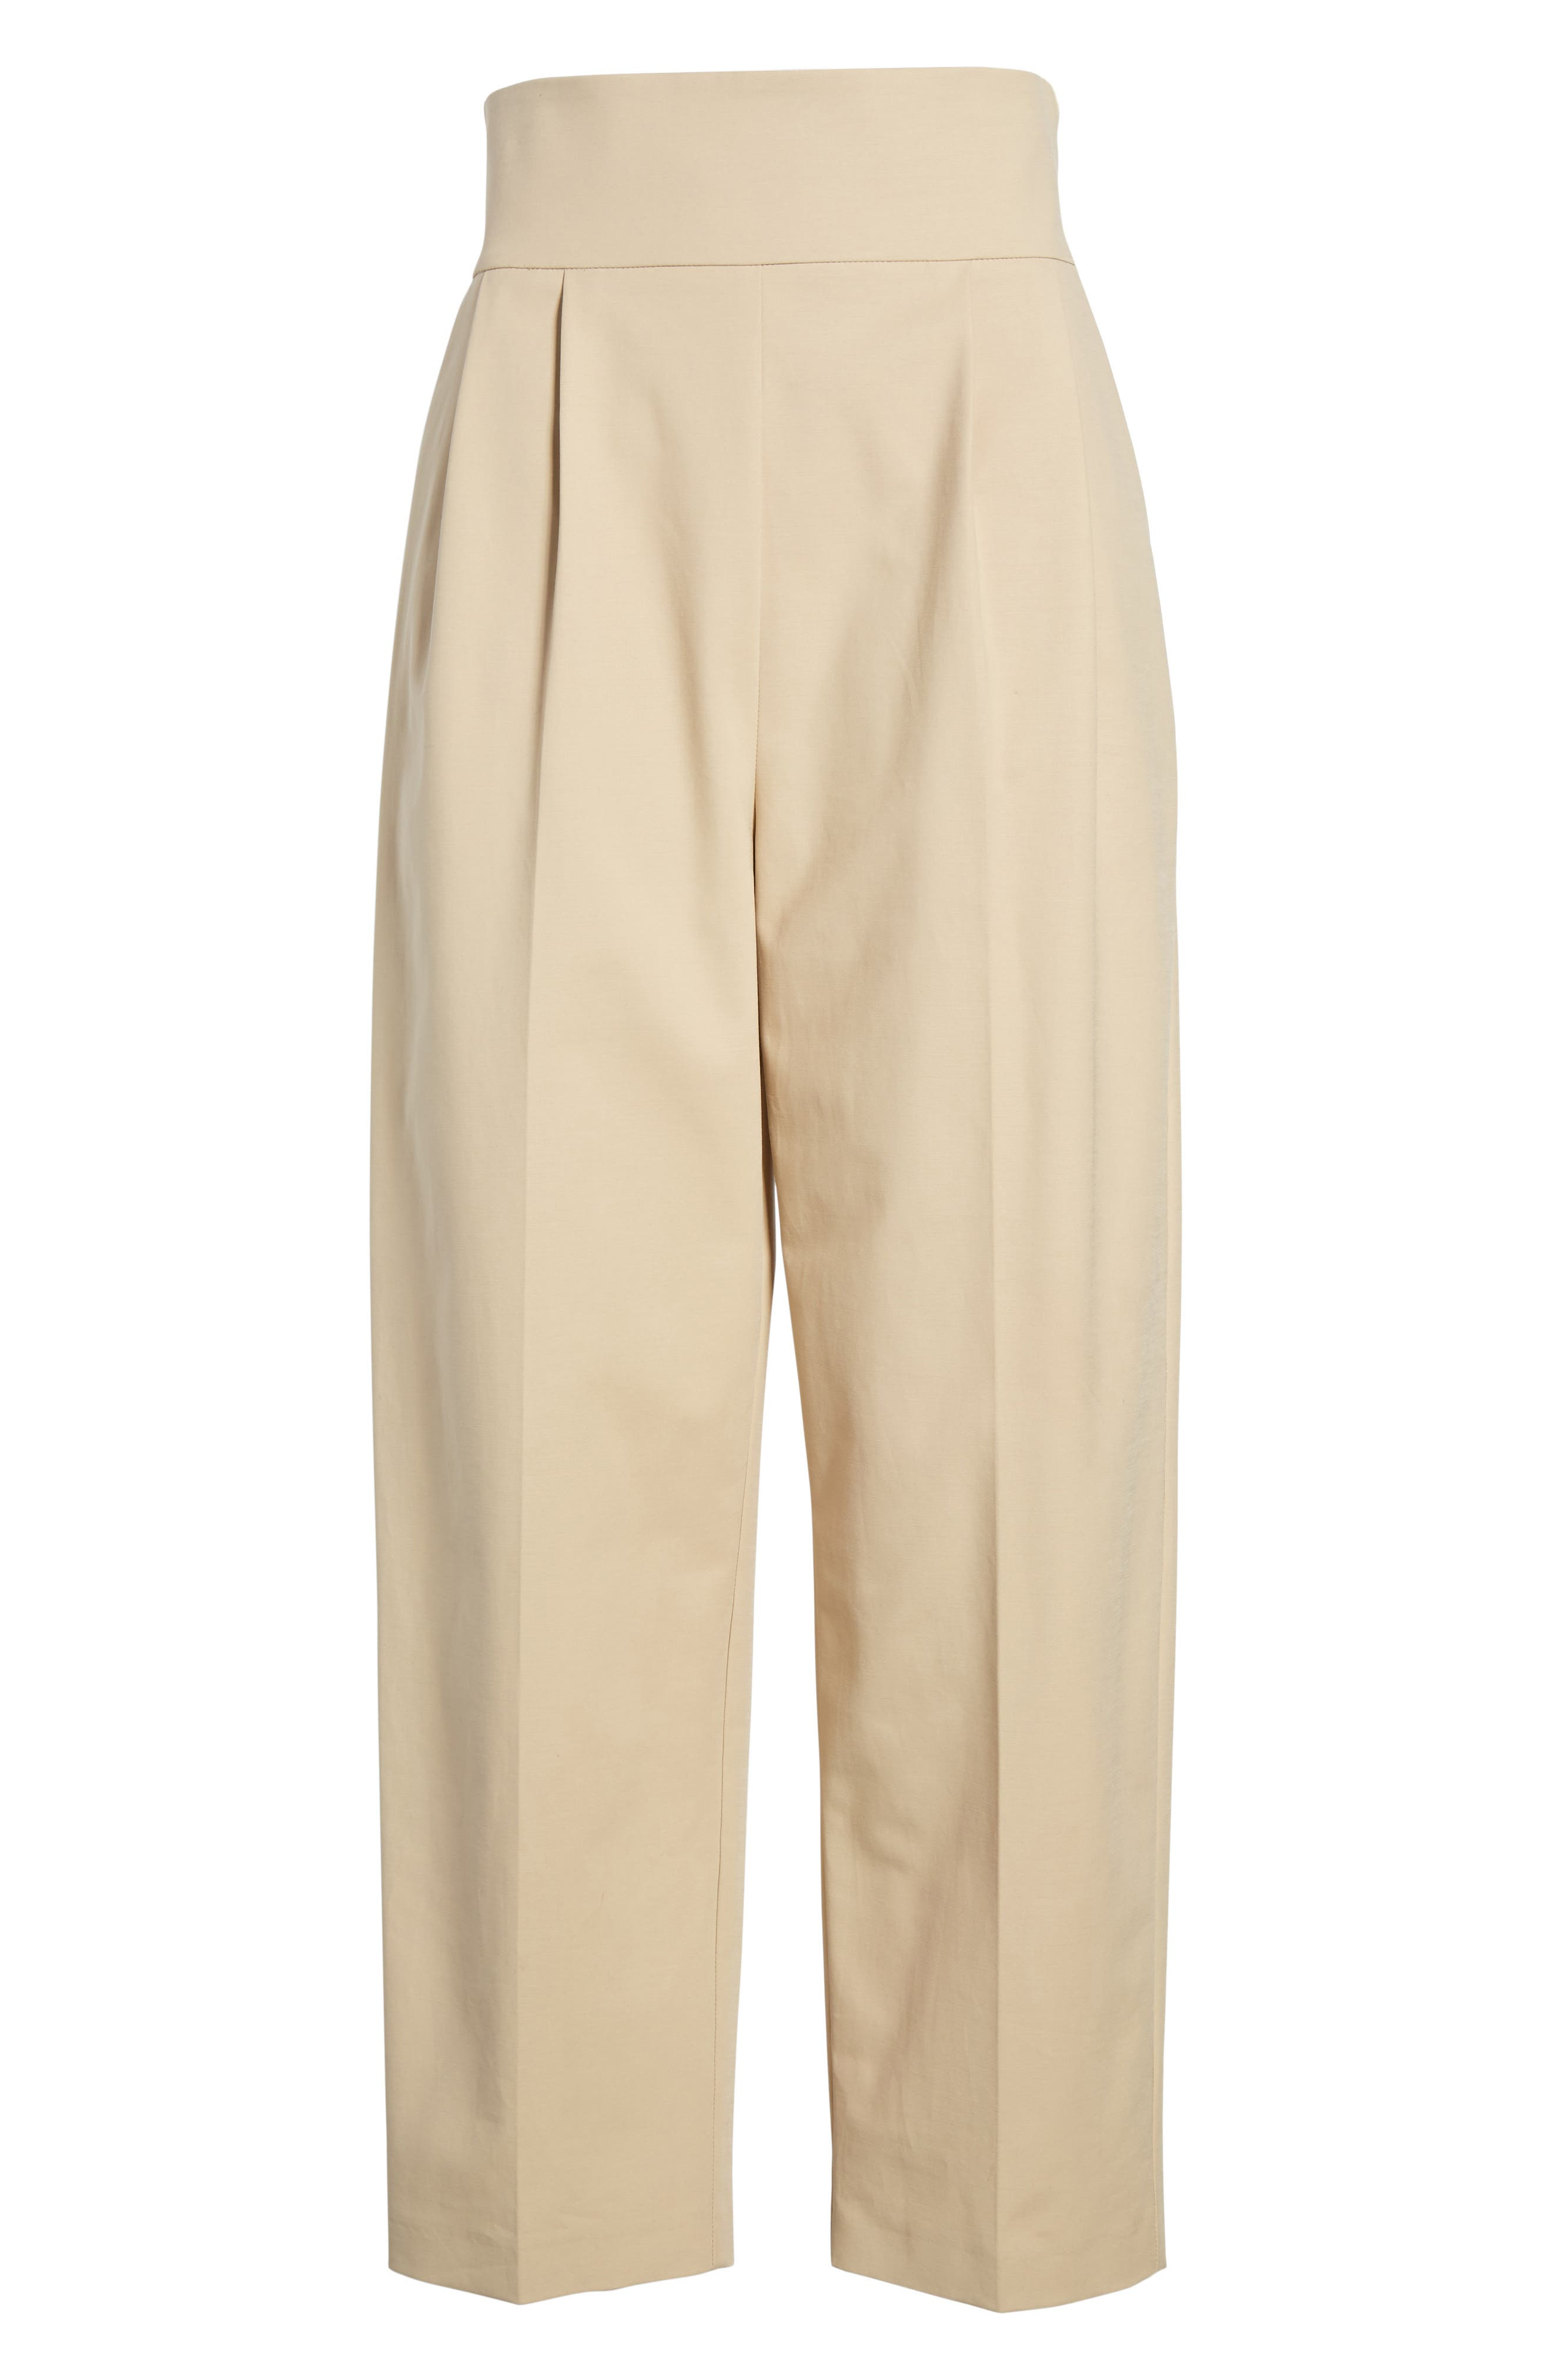 Lace Back Trousers,                             Alternate thumbnail 6, color,                             Camel